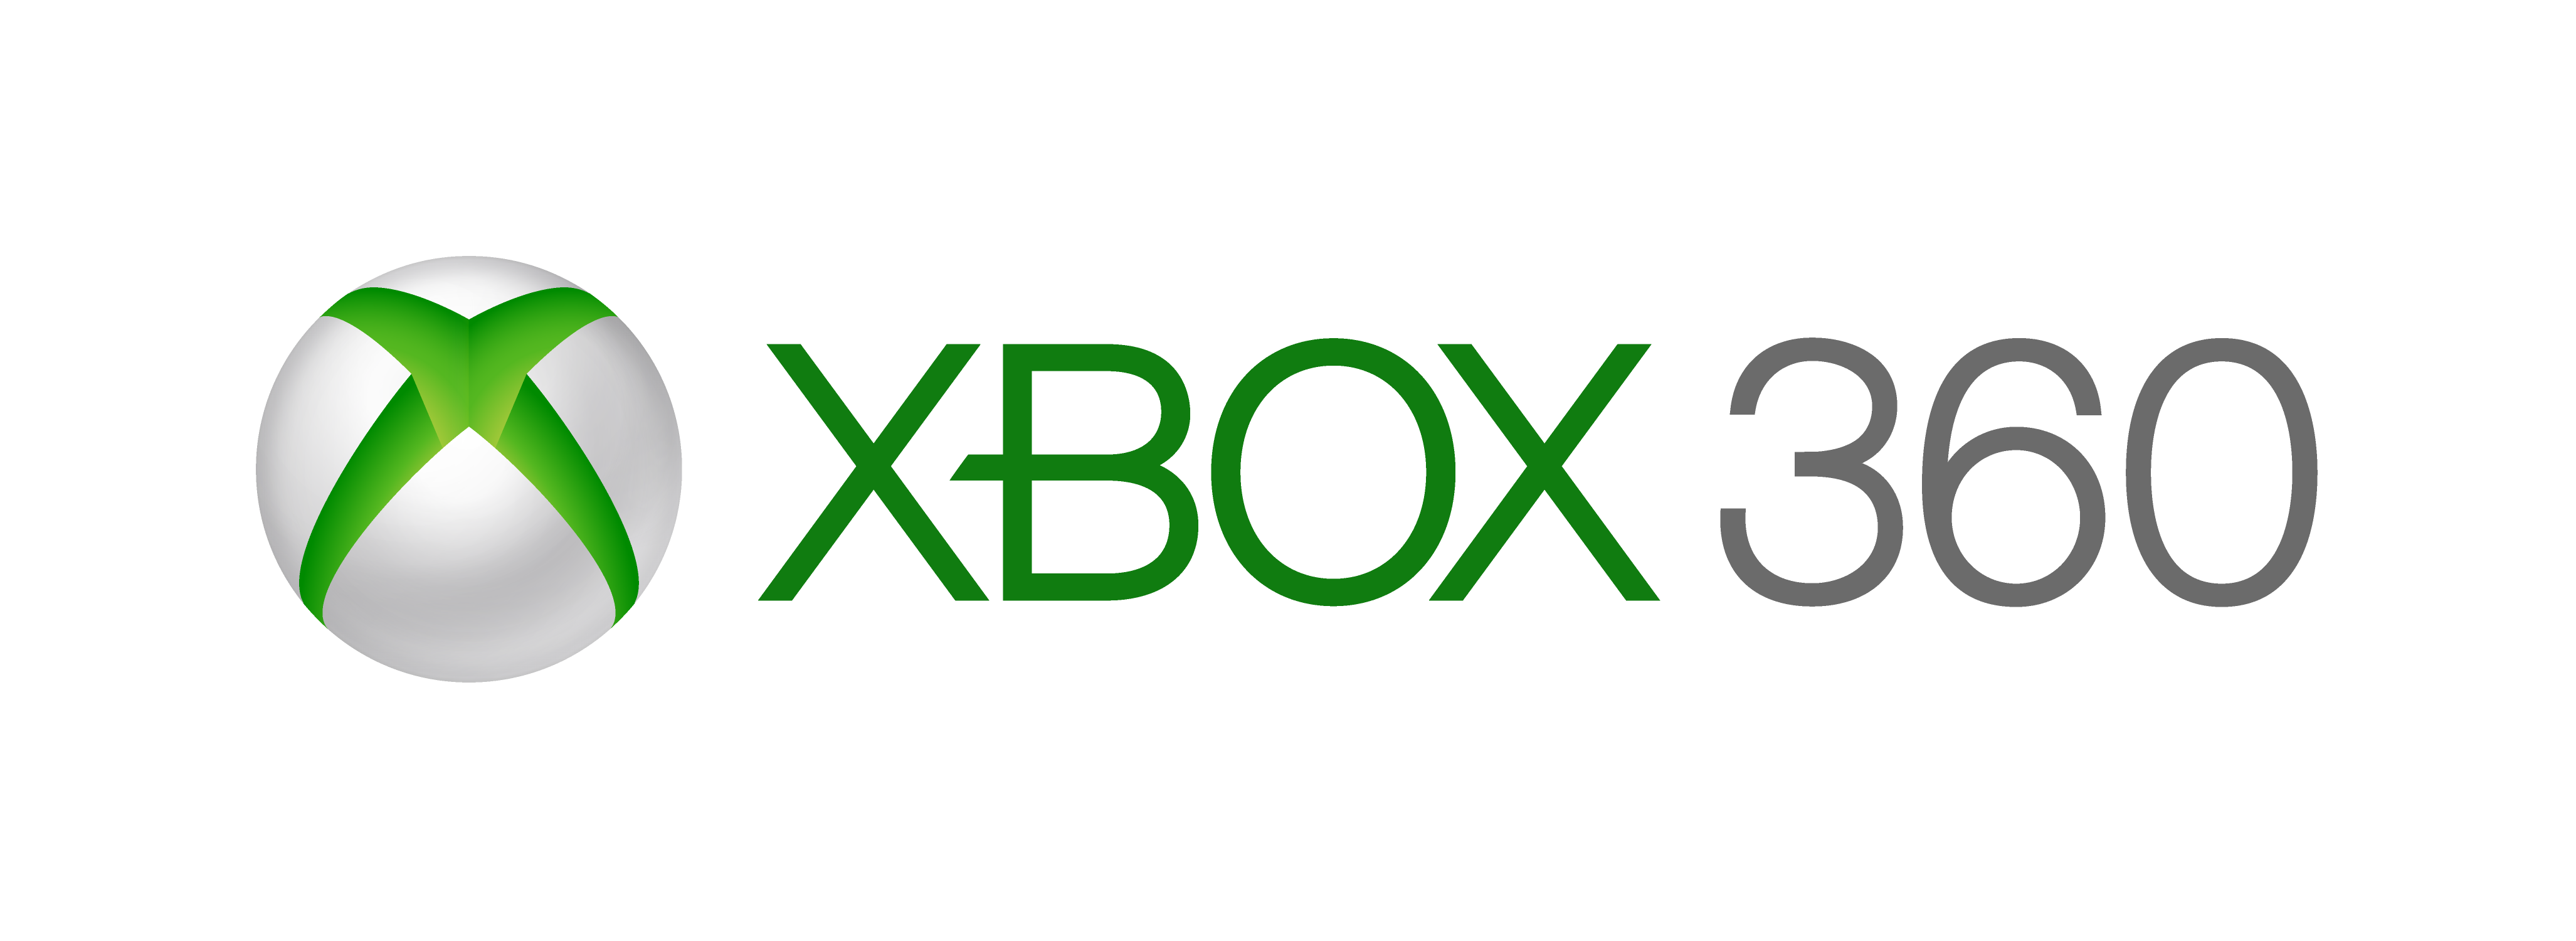 Xbox 360 logo PNG Transparent